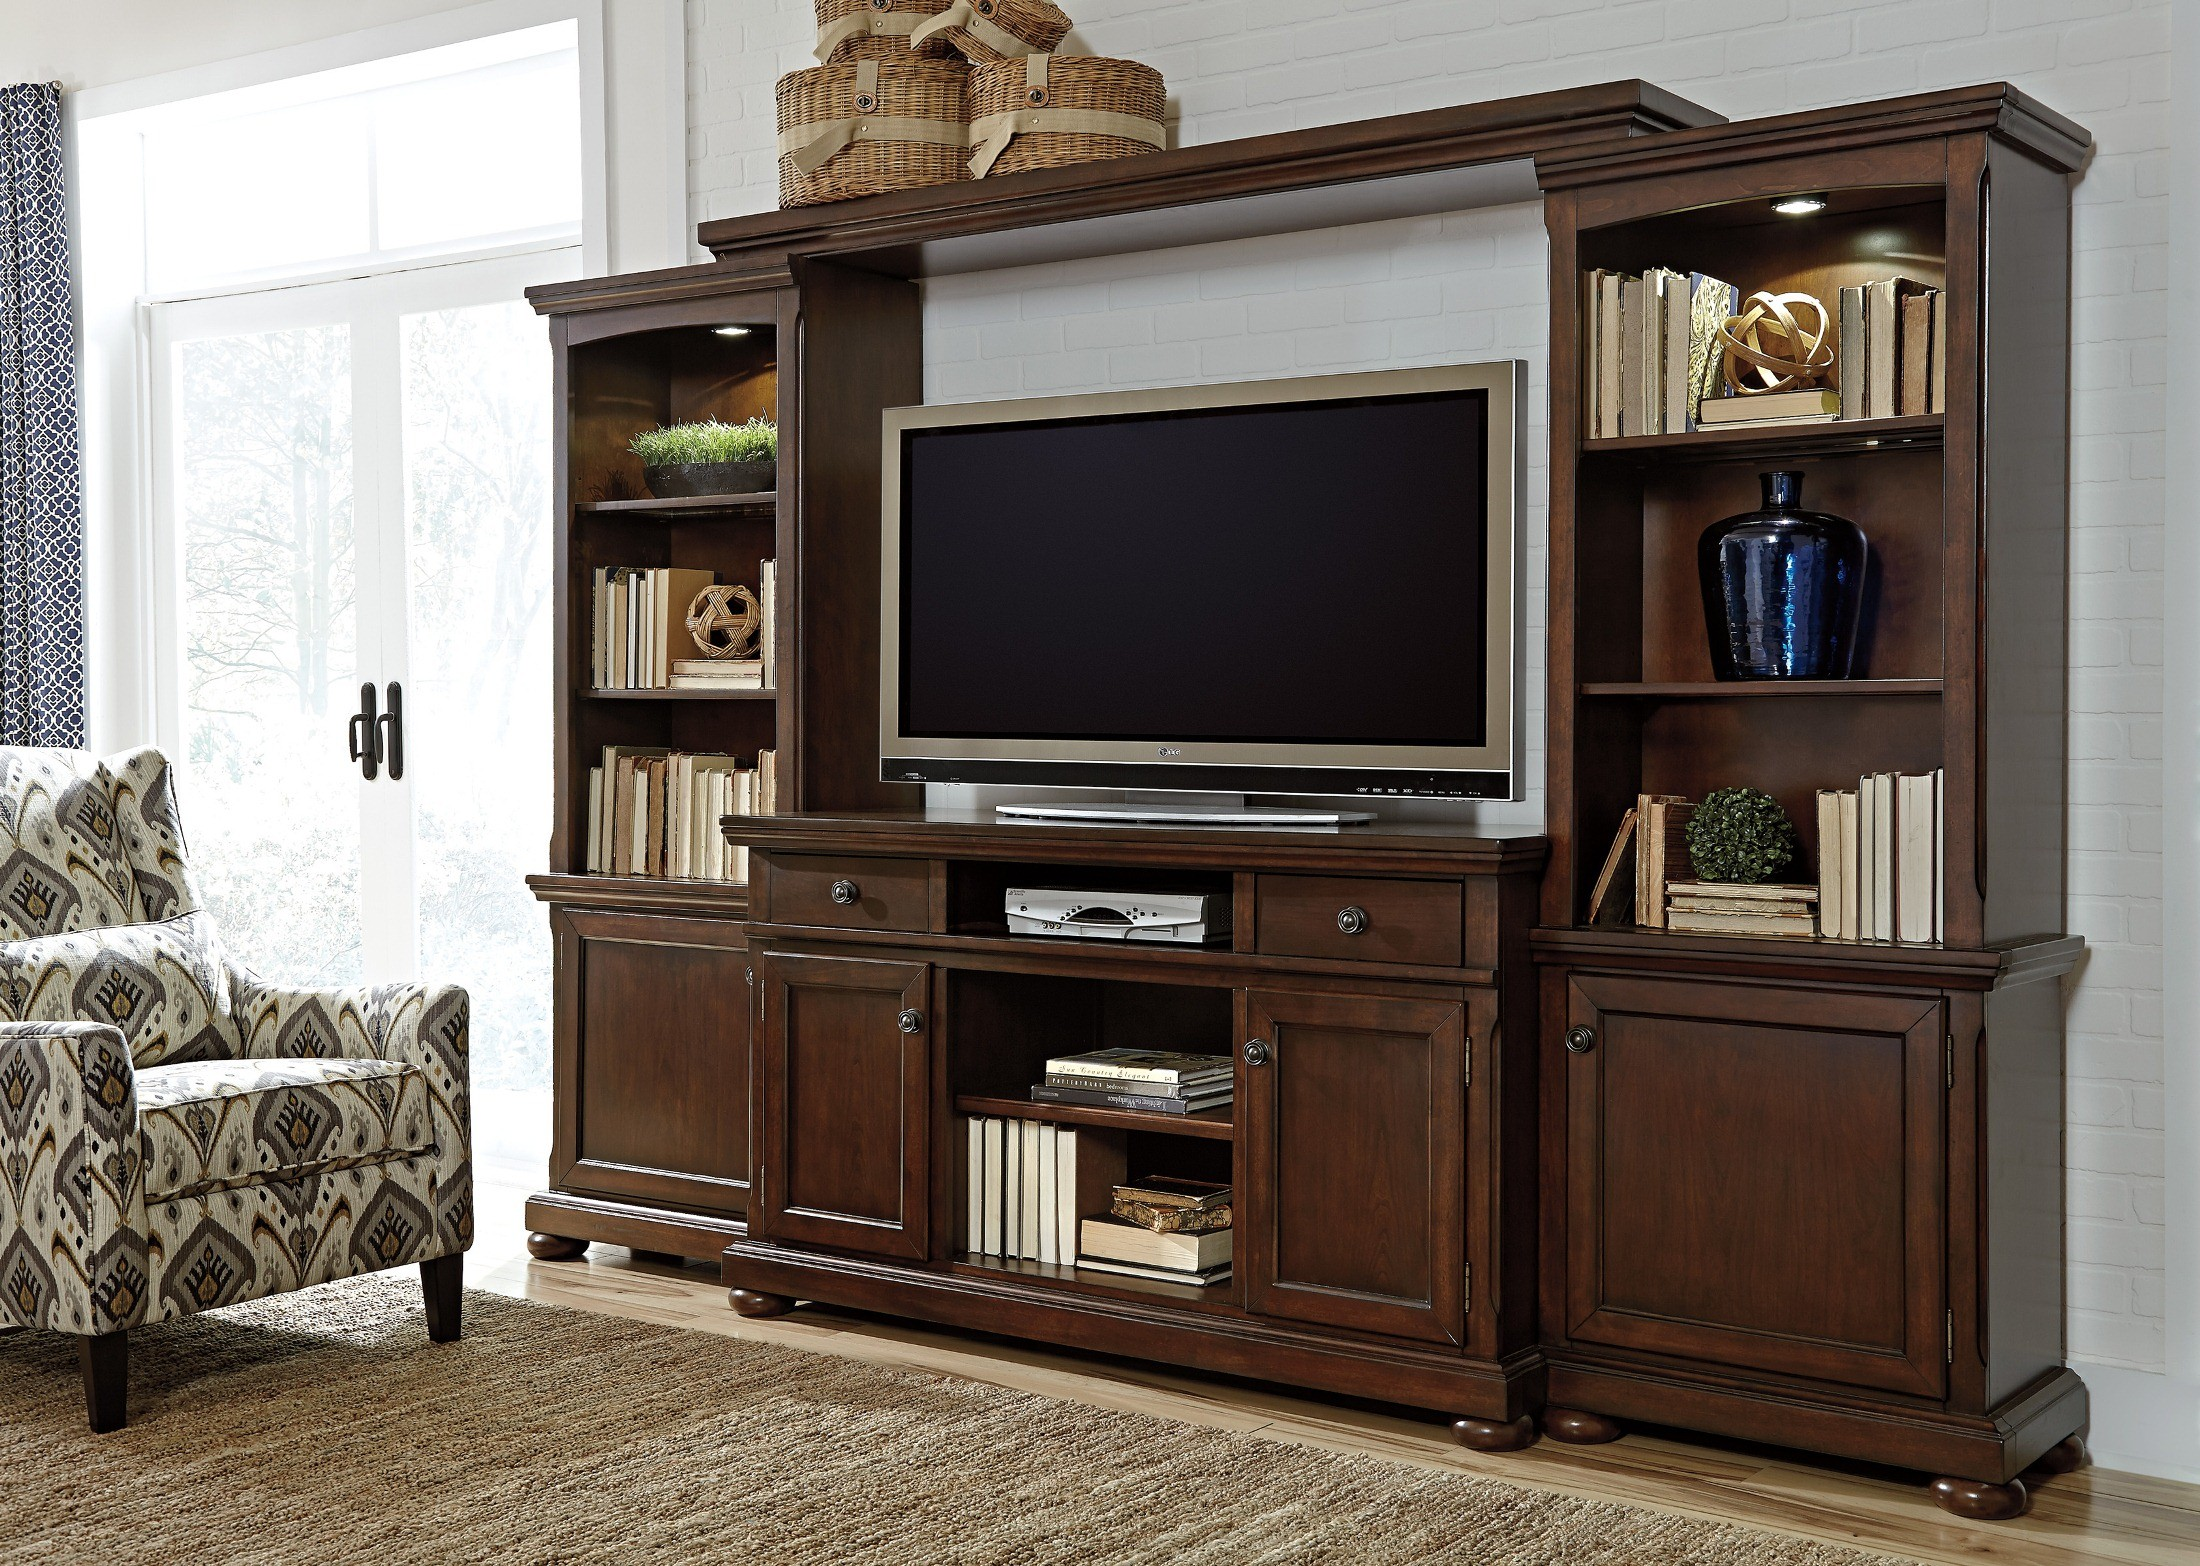 Porter Large Entertainment Wall Unit From Ashley (W697-132-33-34-35)